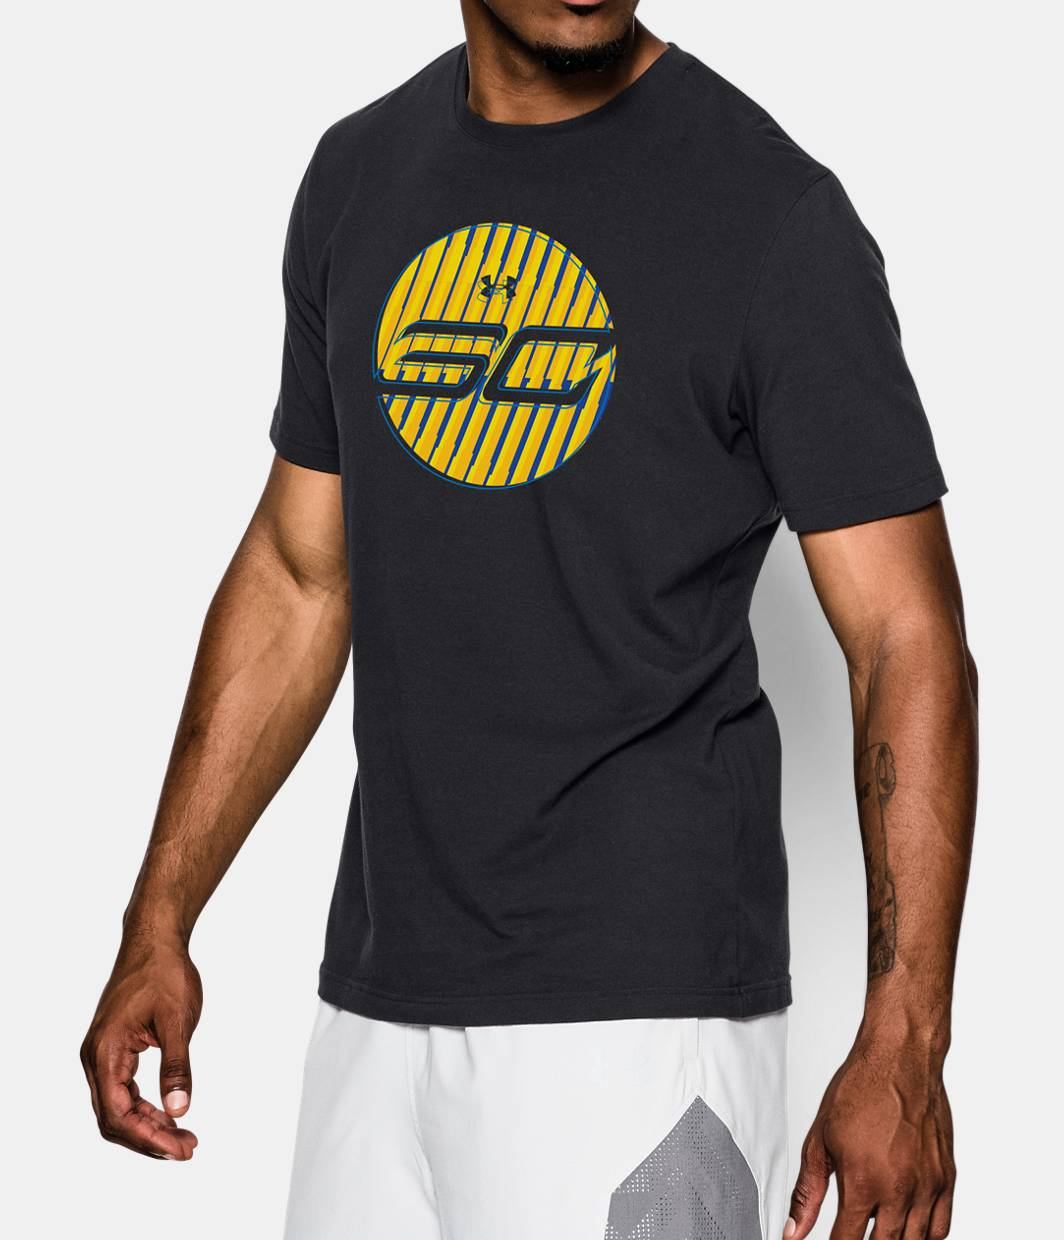 Men s sc30 stephen curry gold runner t shirt under armour us for Stephen curry under armour shirt